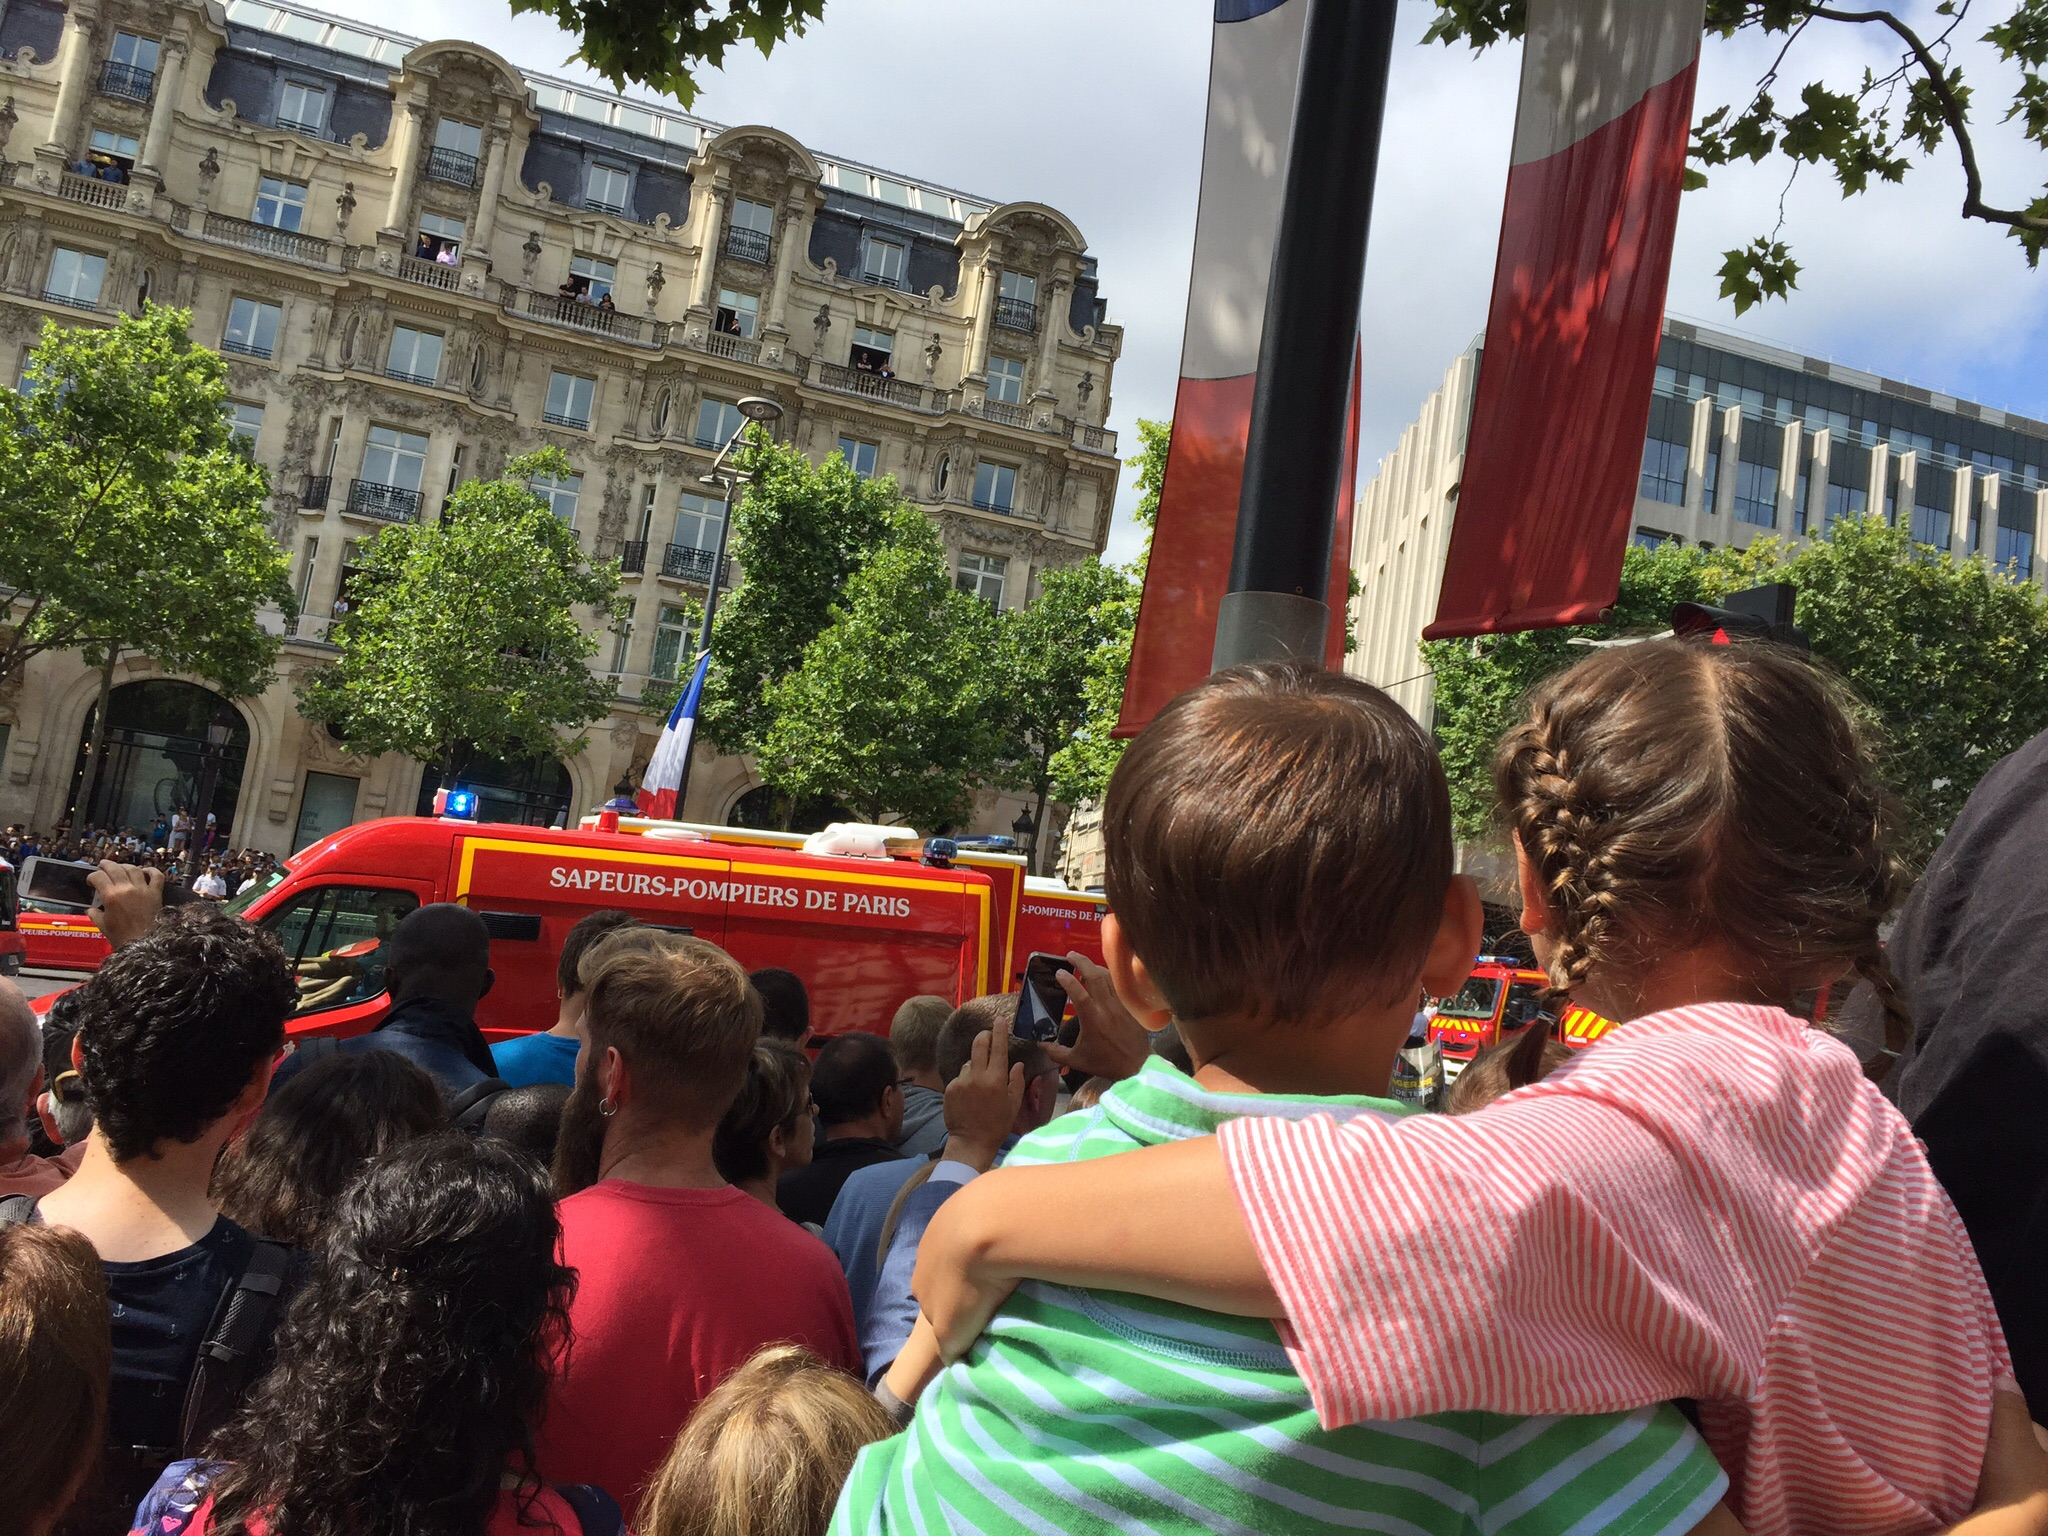 There were big cheers for the pompiers--they're clearly a crowd favorite!